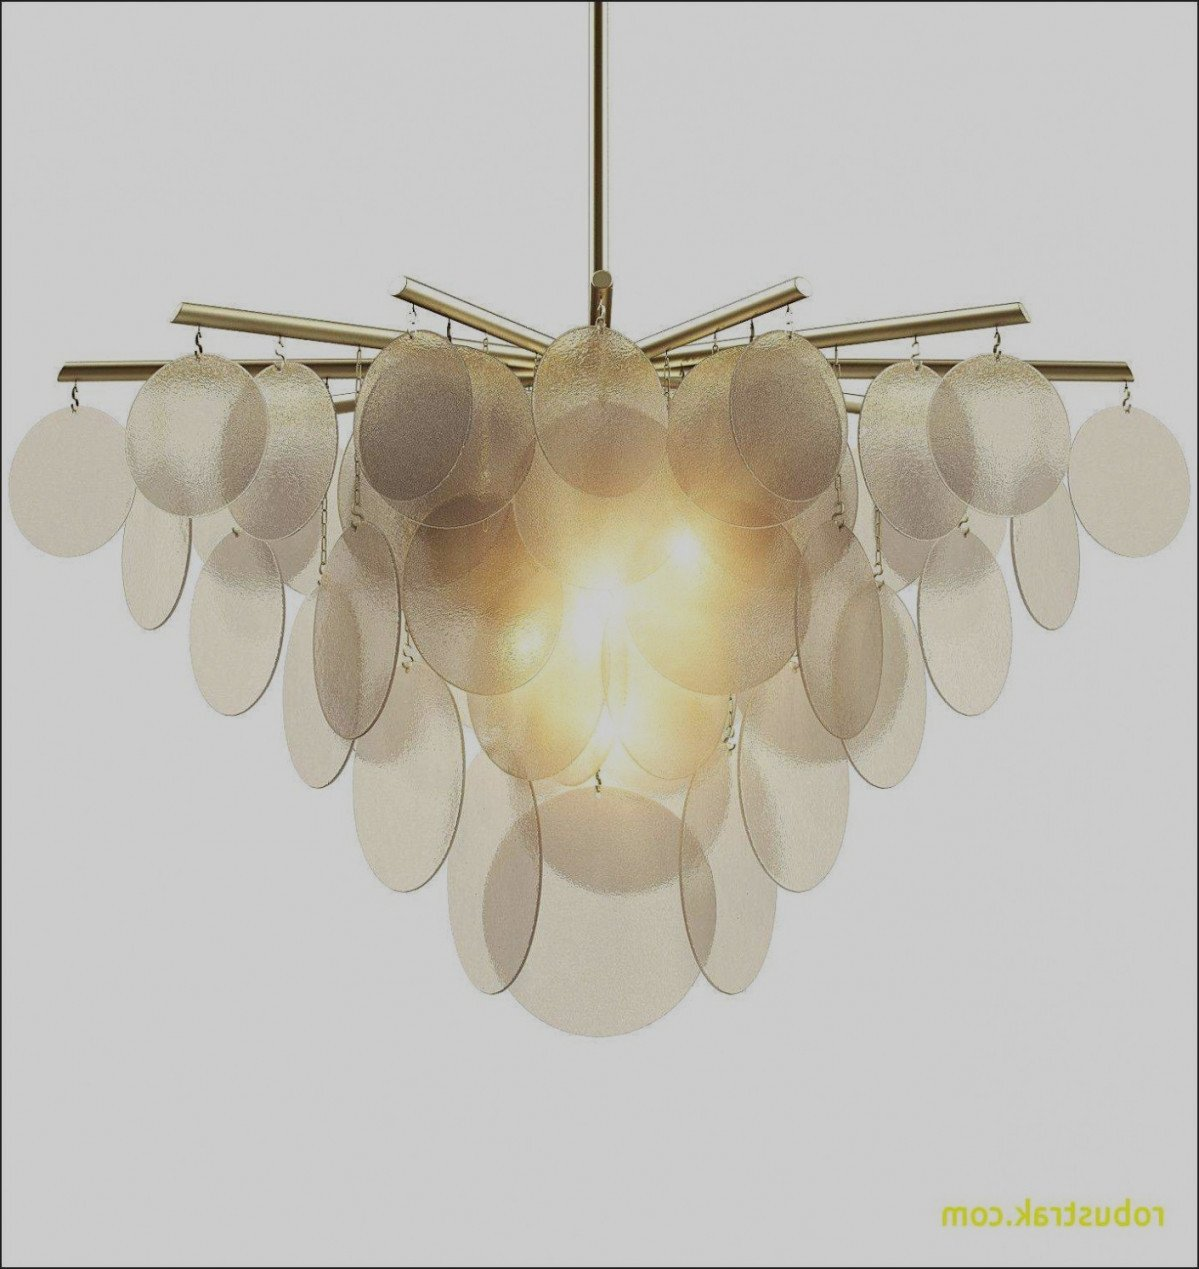 Small Chandeliers for Bedroom Lovely Flush Mount Chandelier Elegant Pendant Light Revit